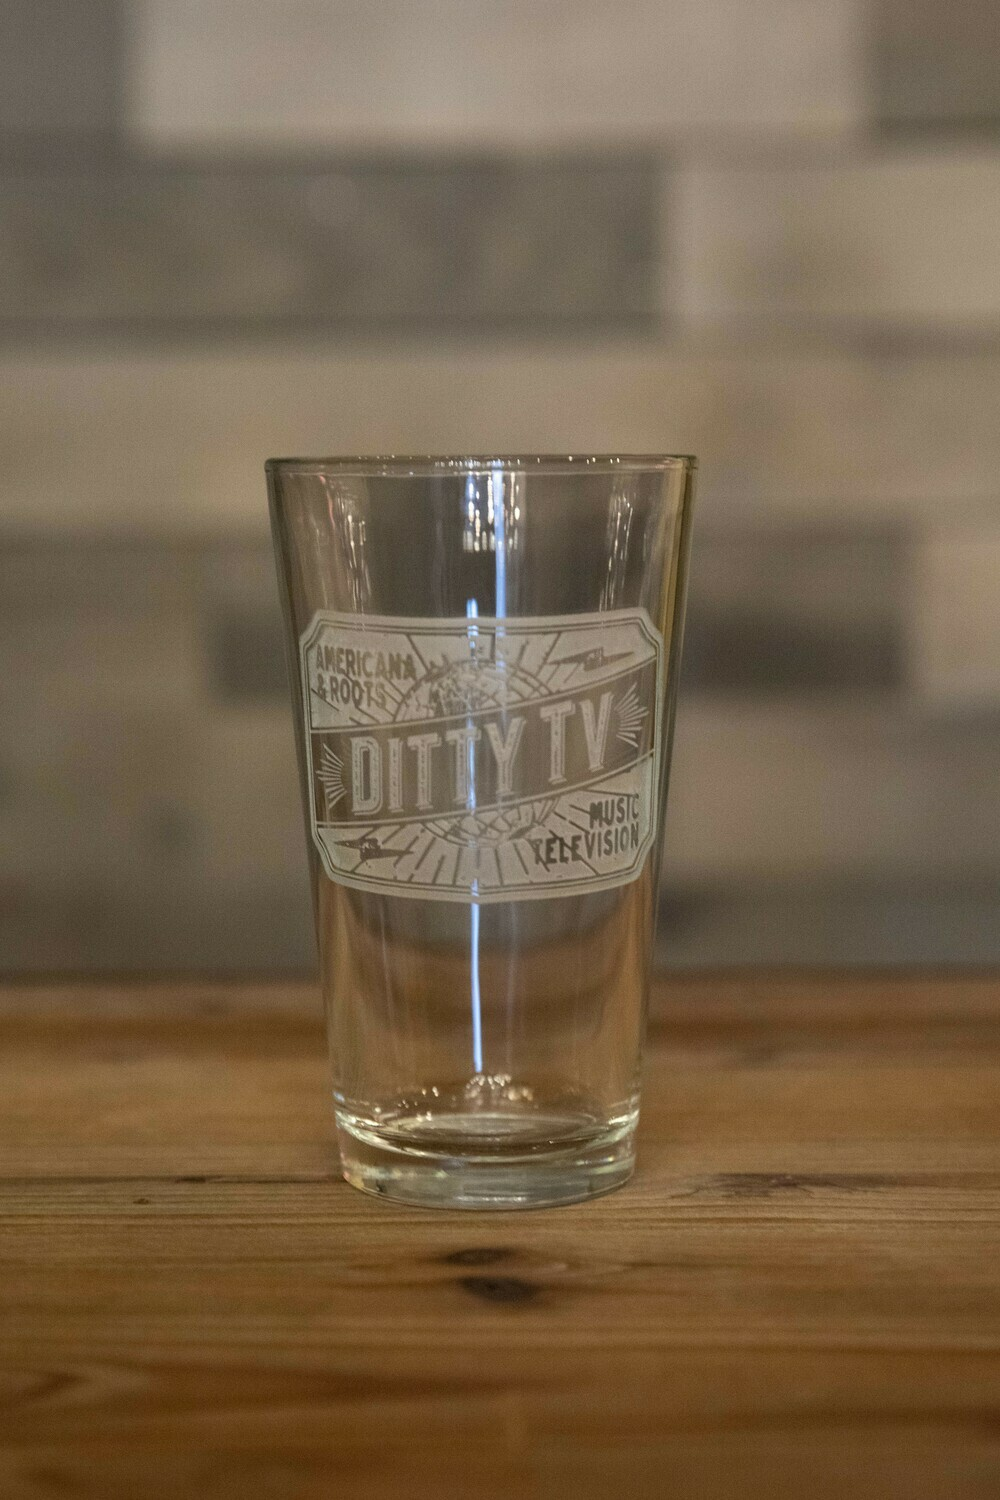 DittyTV Pint Glass